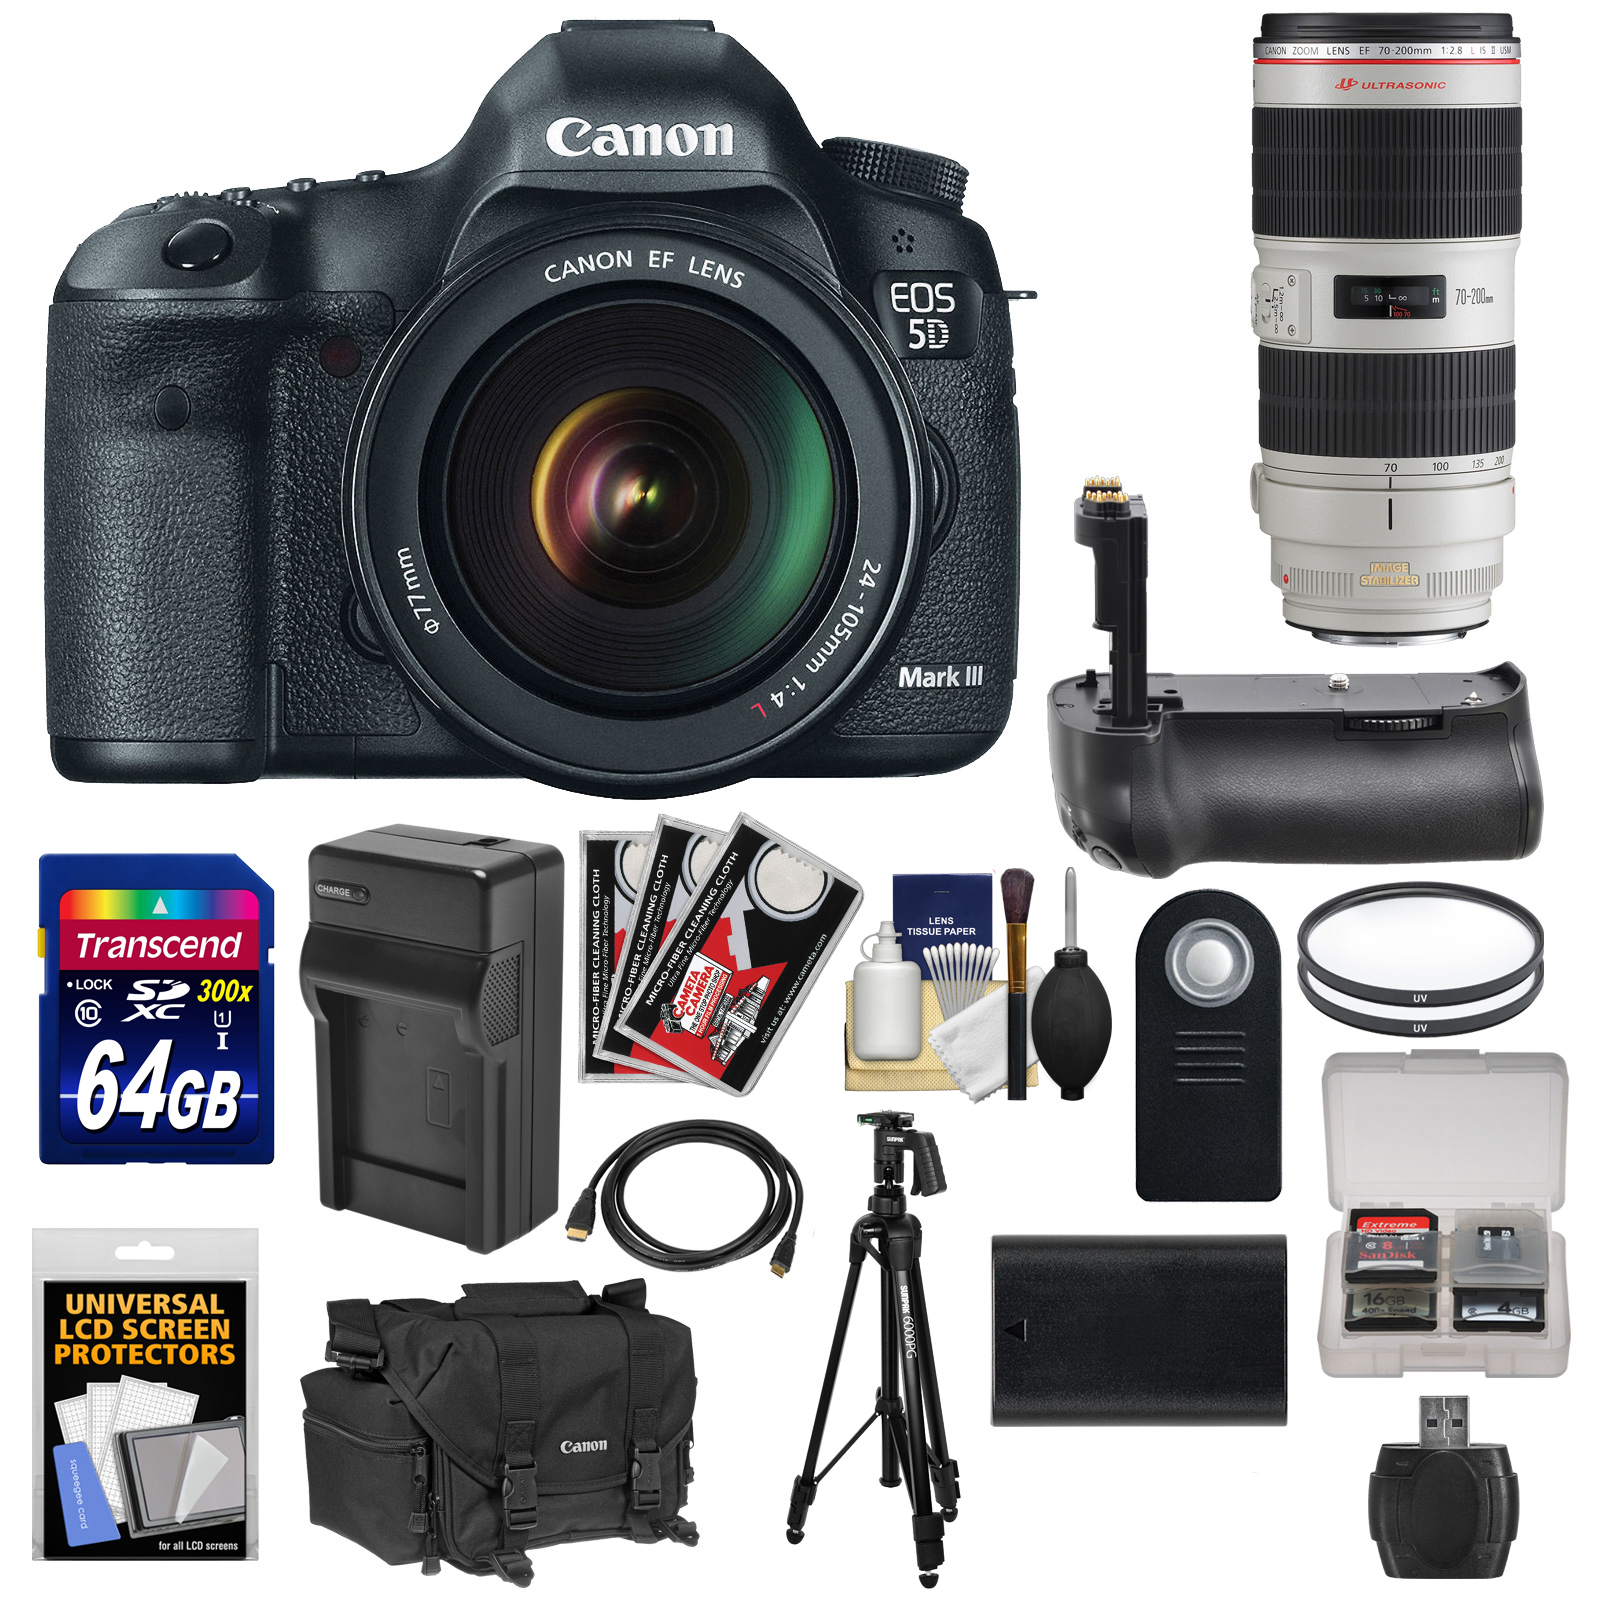 Canon EOS 5D Mark III Digital SLR Camera with EF 24-105mm L IS & 70-200mm f 2.8 L IS II Lens + 64GB Card + Grip +... by Canon